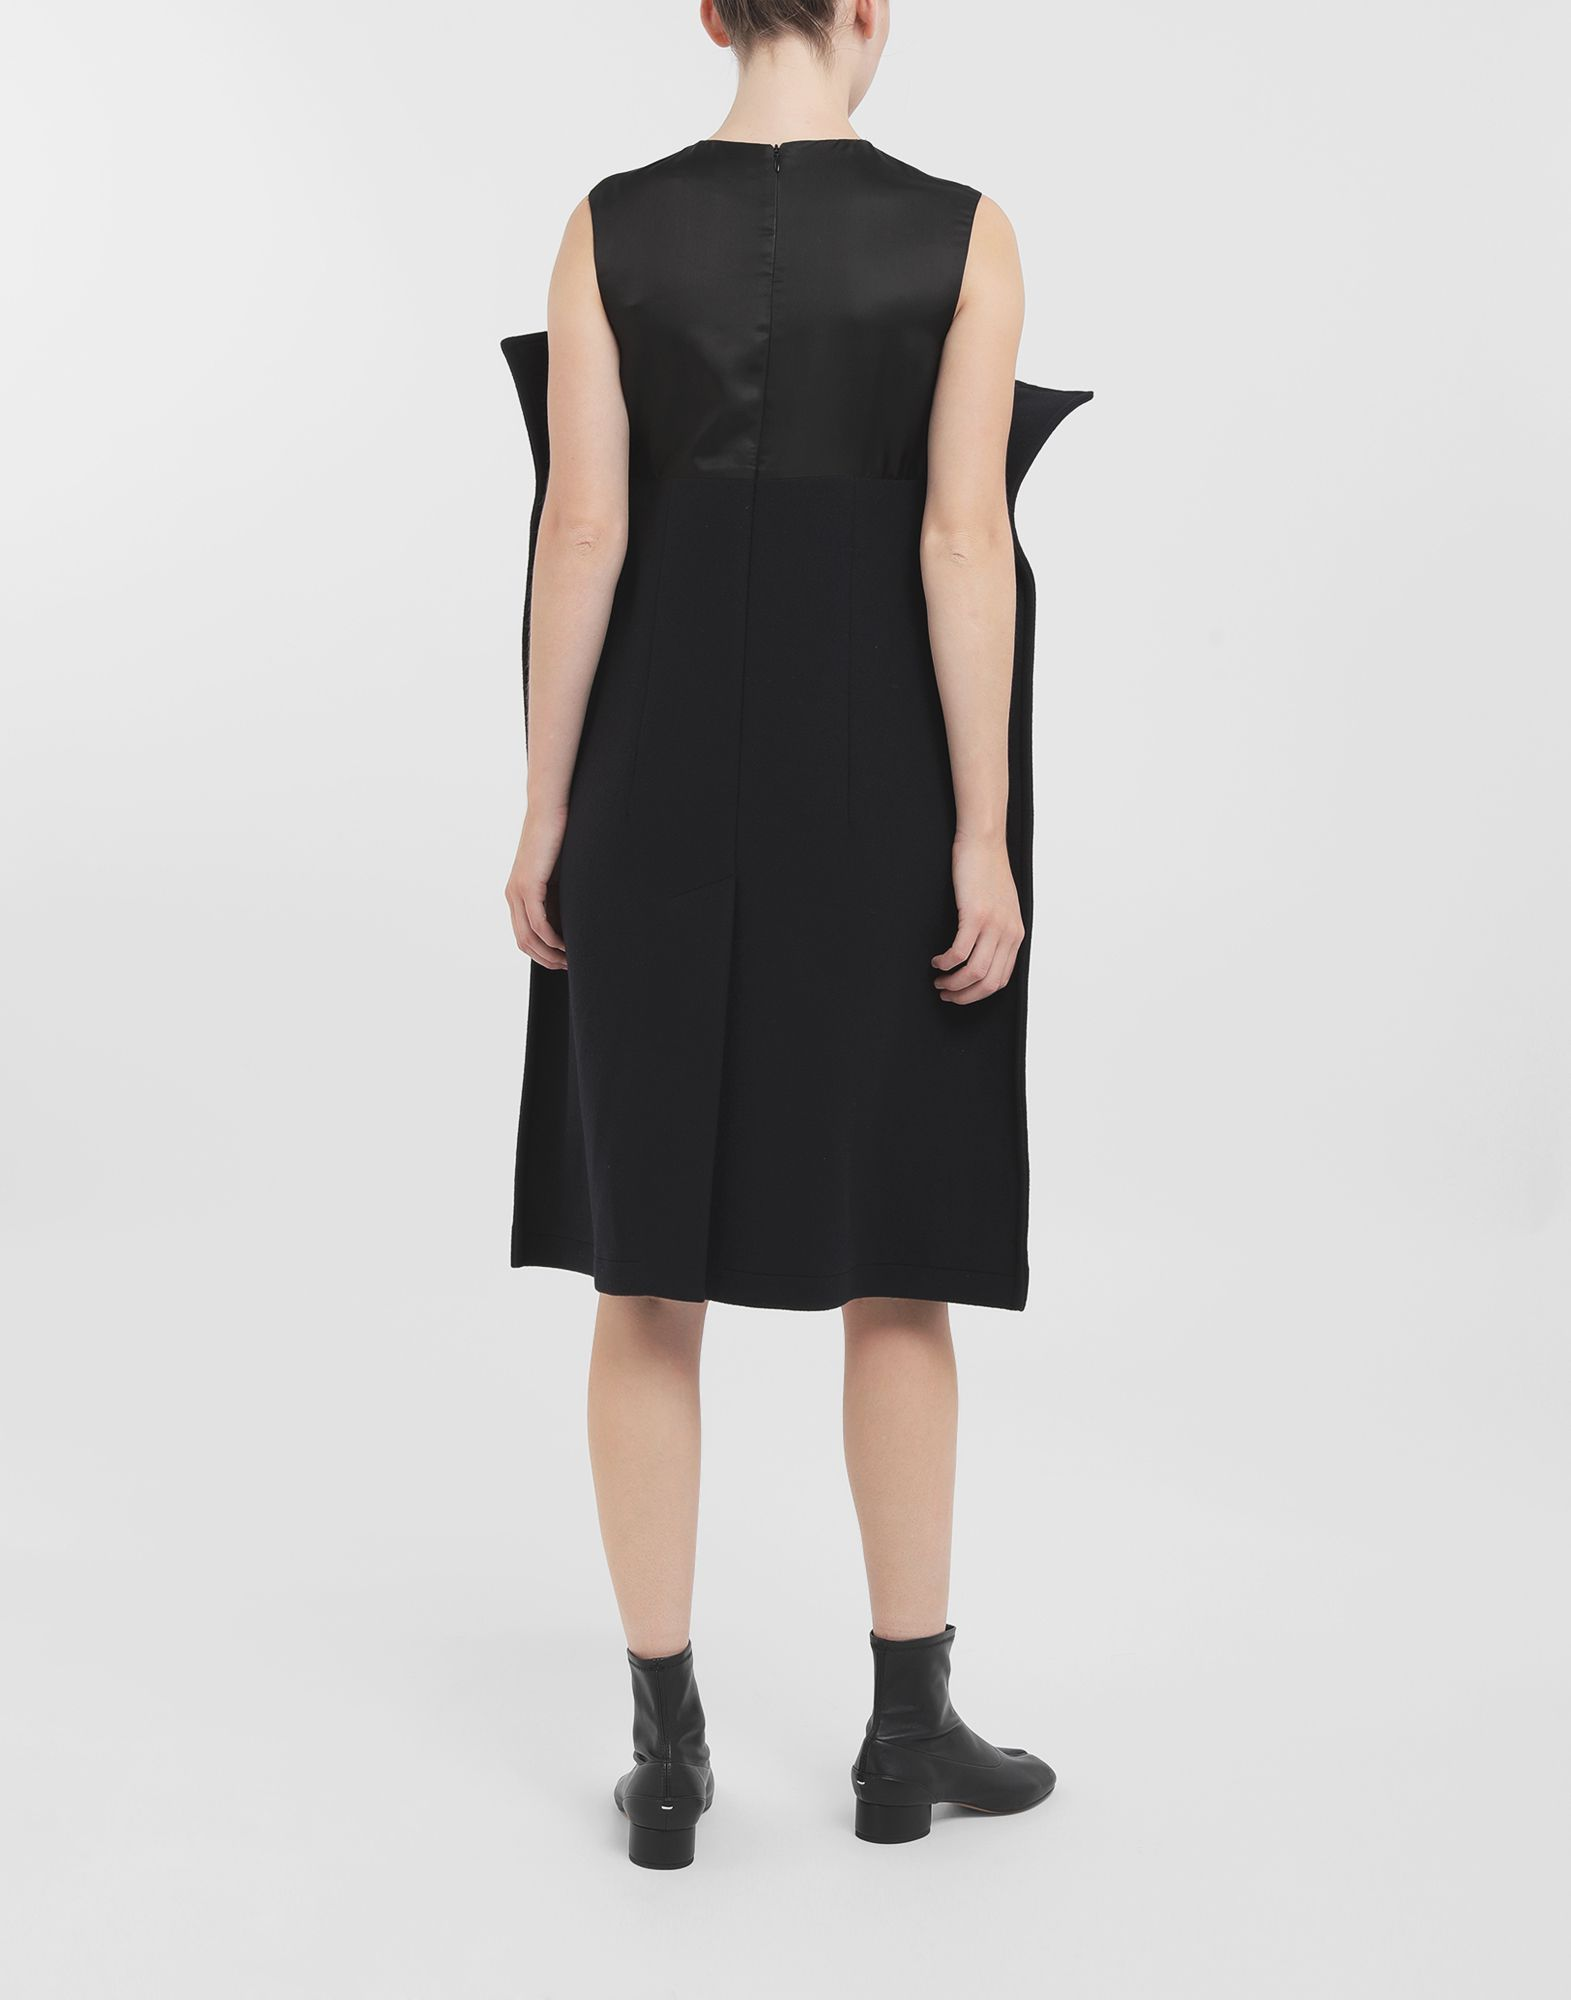 MAISON MARGIELA Bustier wool dress Dress Woman e